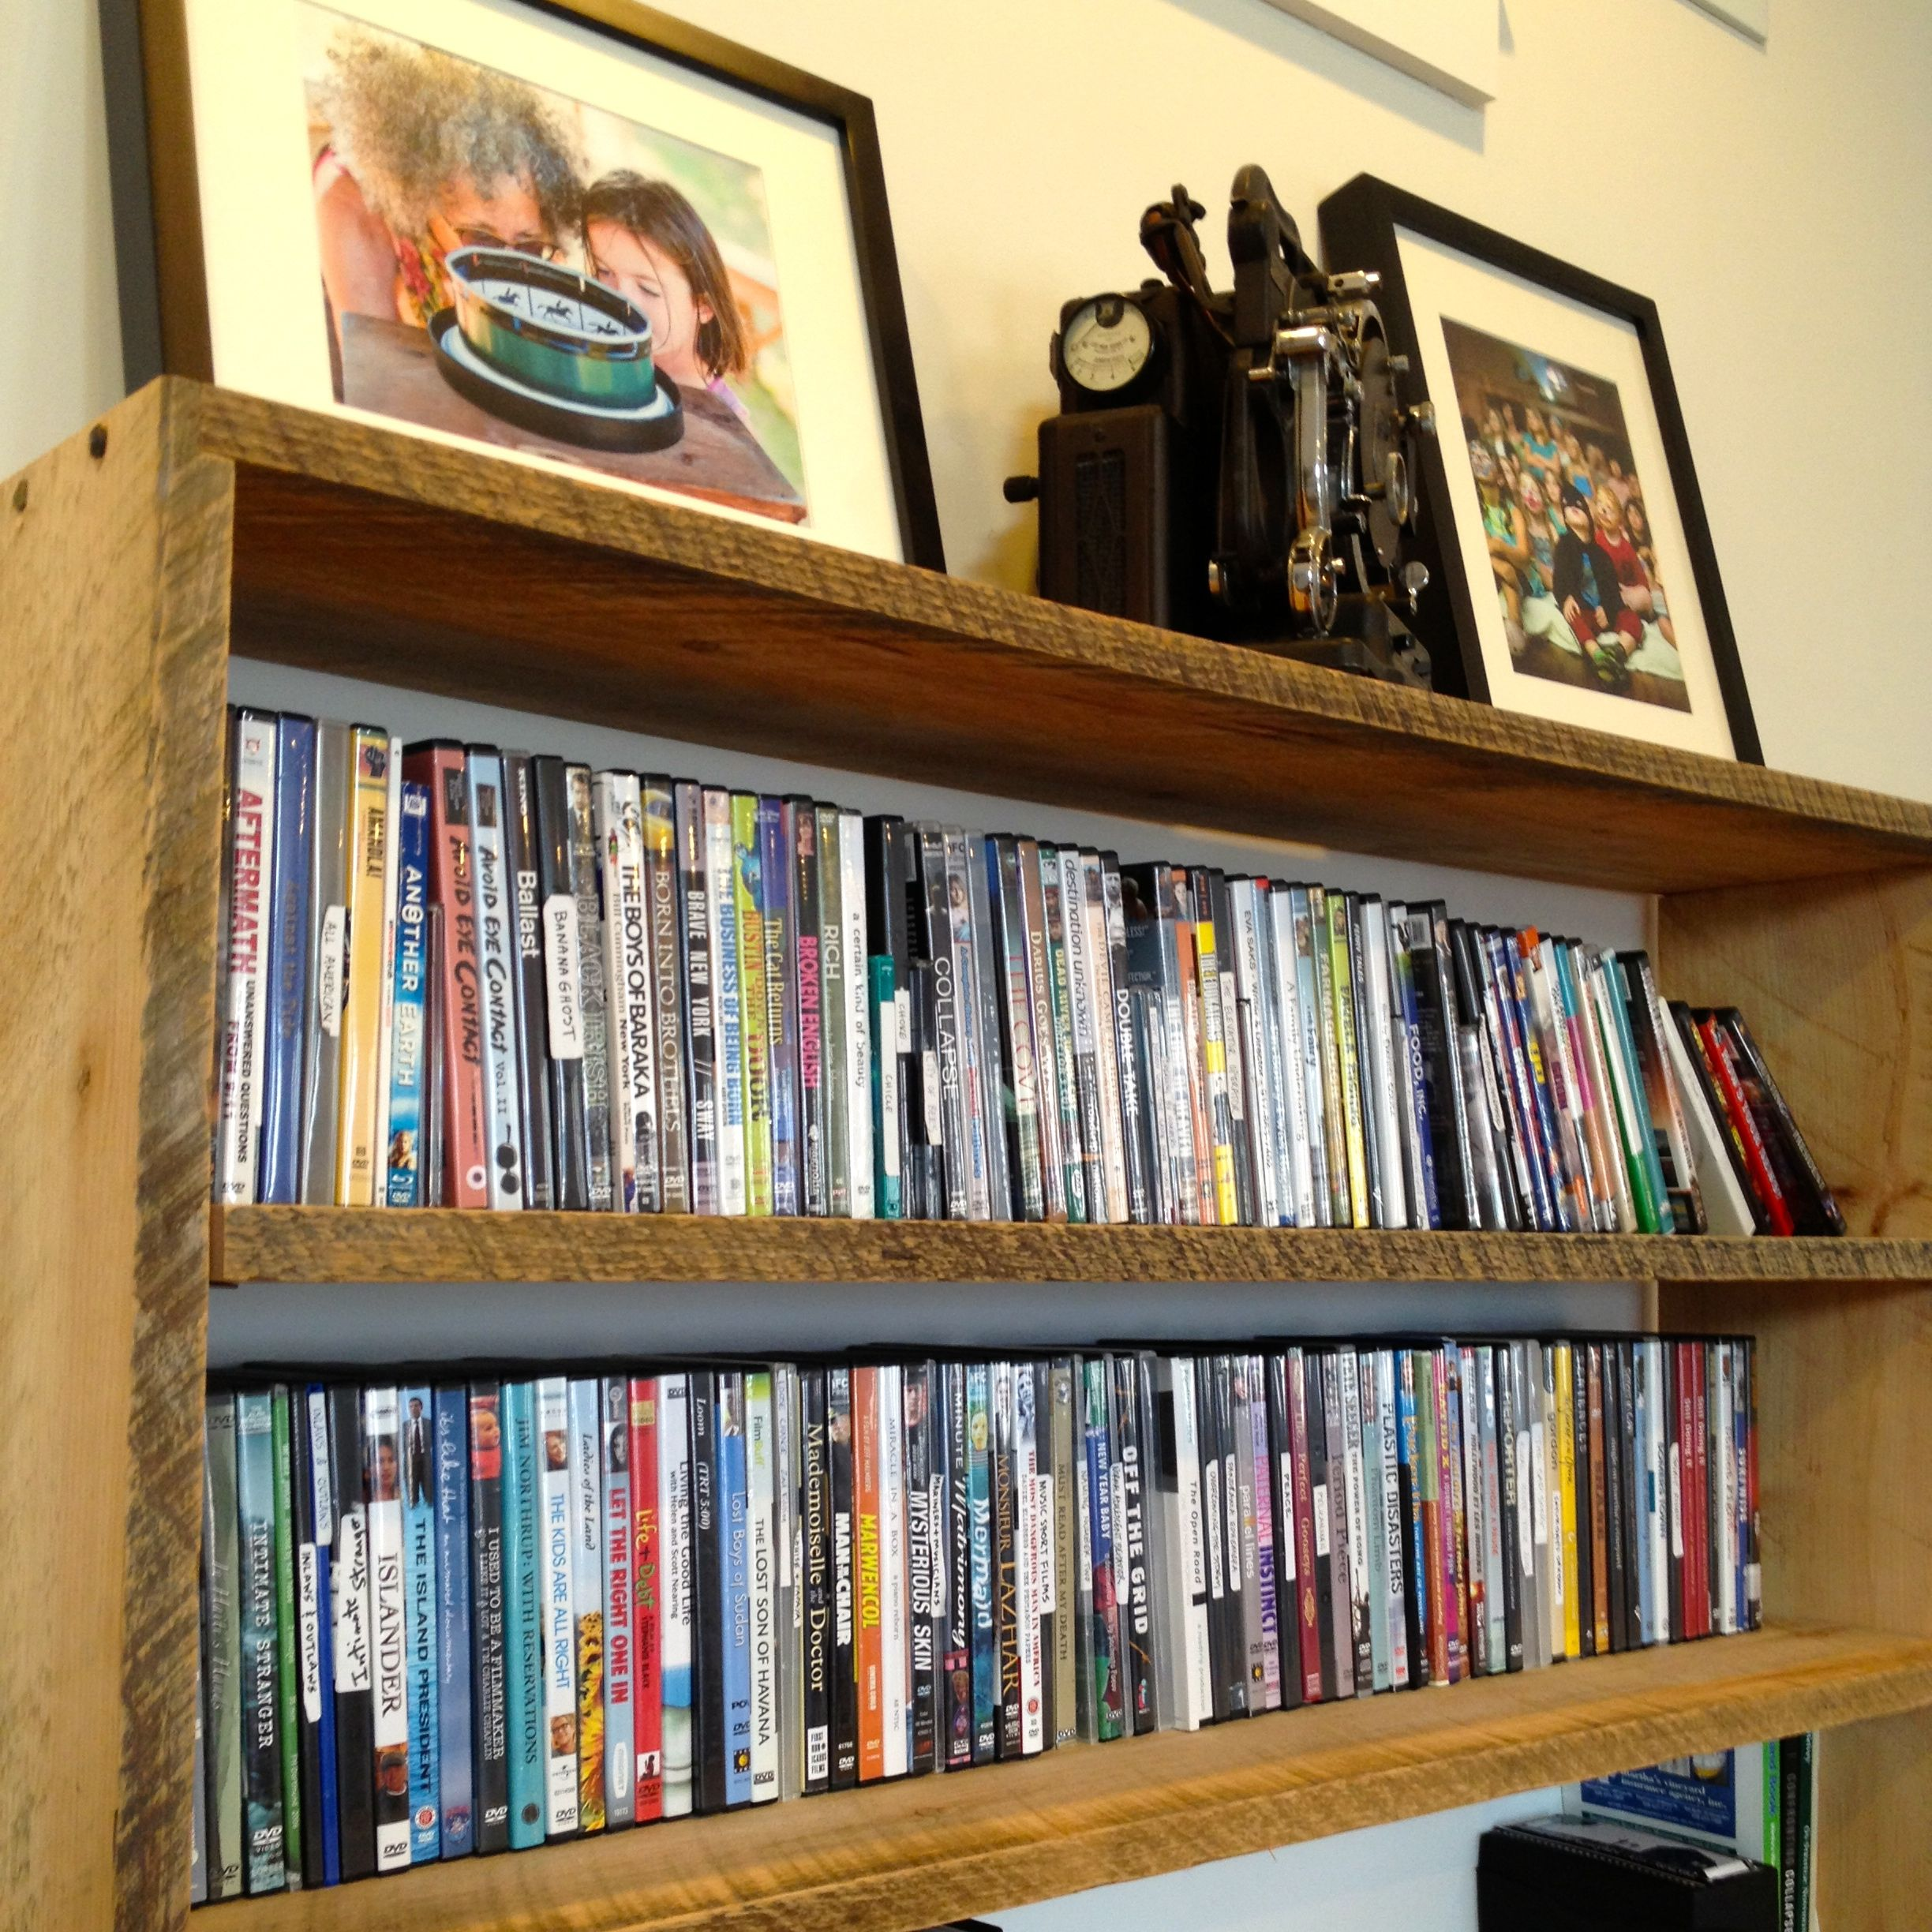 Add a movie to our lending library - $25